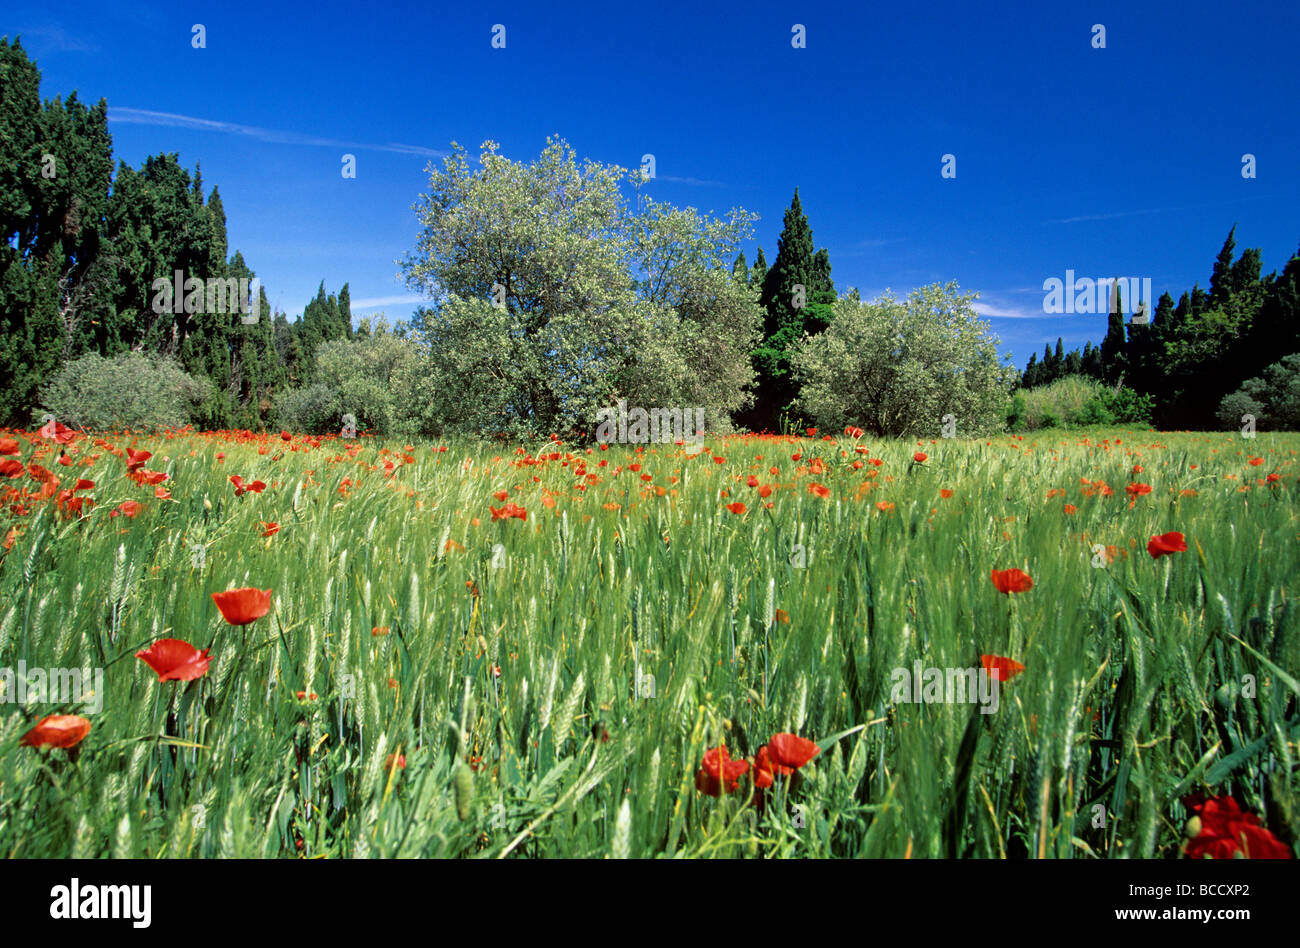 France, Bouches du Rhone, Alpilles, field of wheat, olive trees and poppies towards Saint Remy de Provence - Stock Image